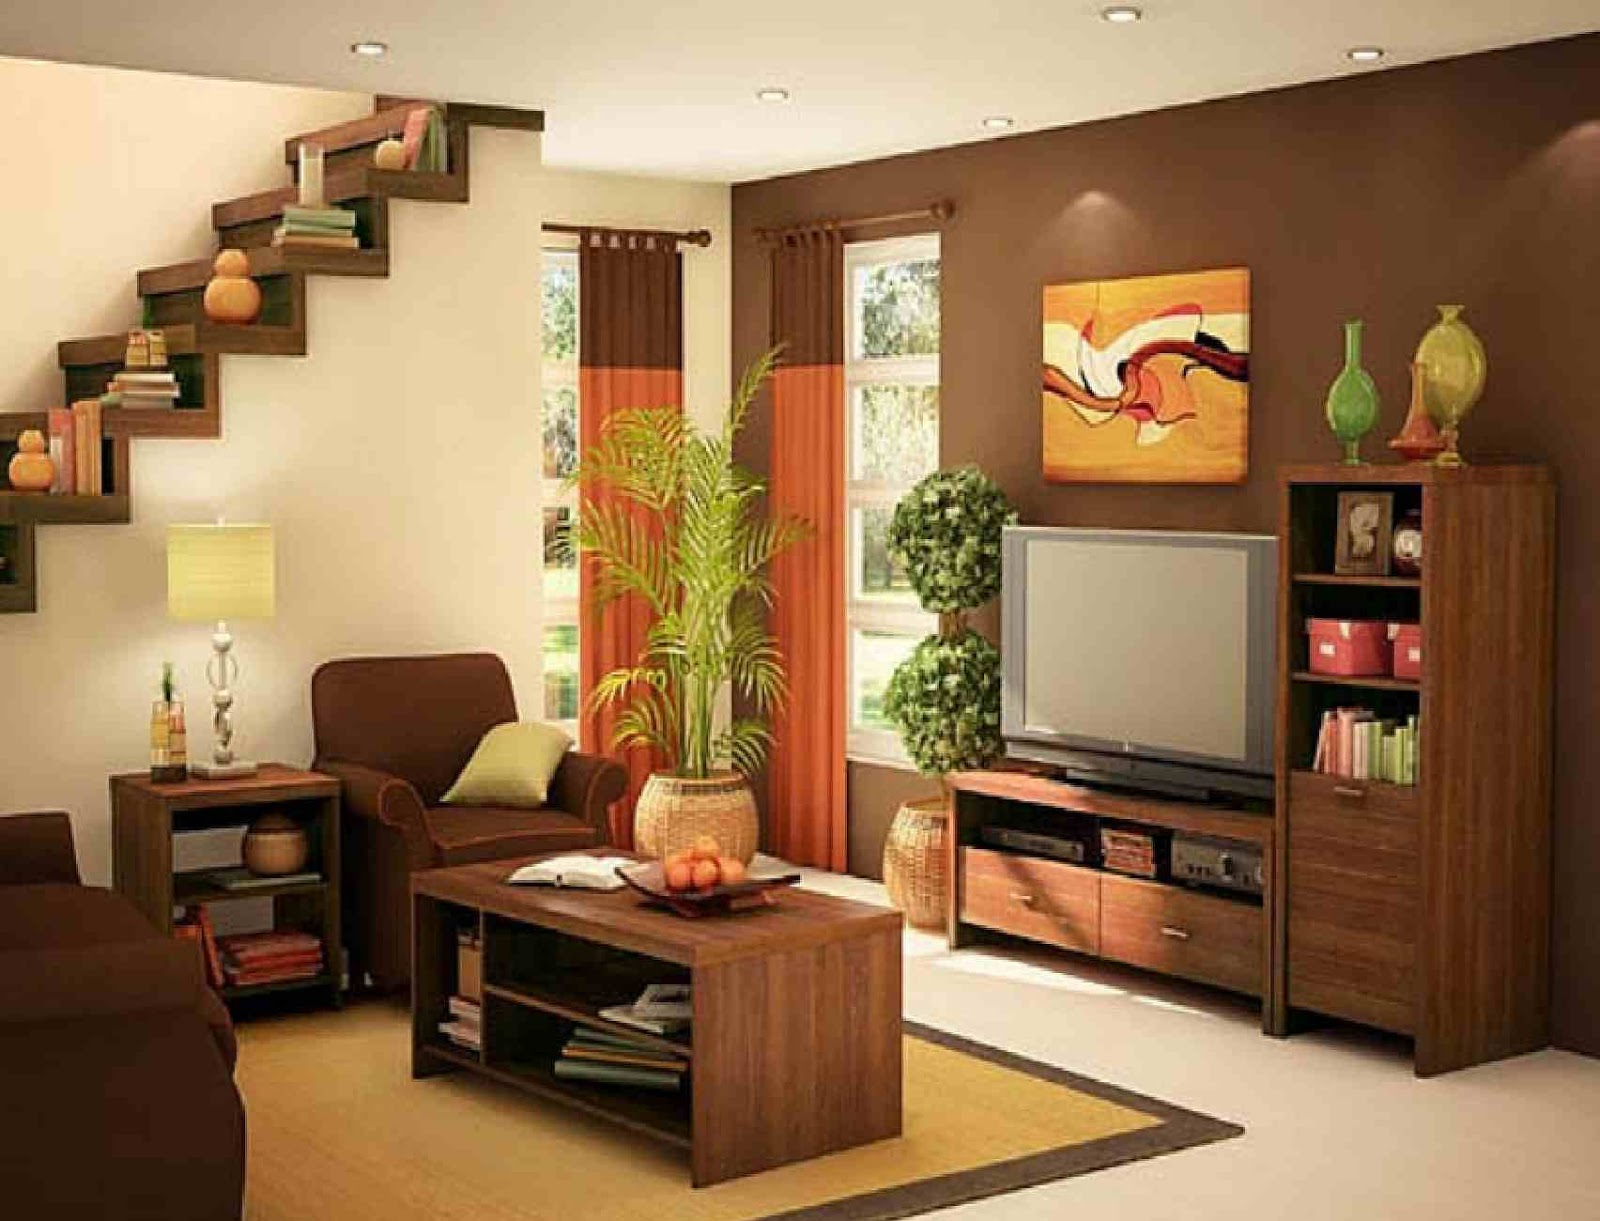 Home interior designs simple living room designs for Easy living room designs